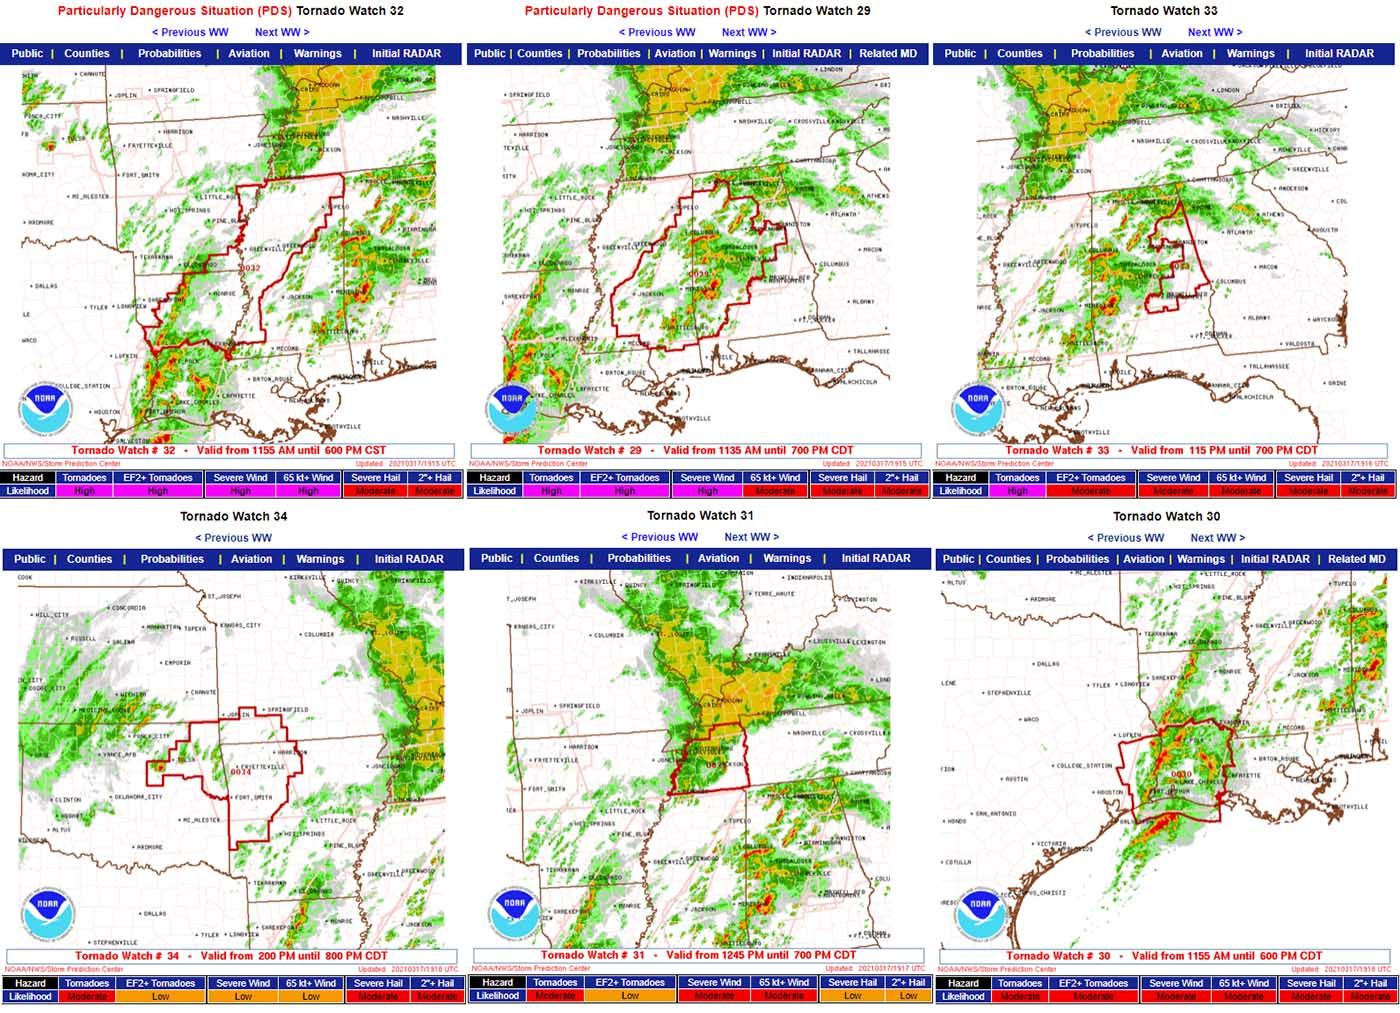 tornado-outbreak-particularly-dangerous-situation-watch-alabama-mississippi-PDS-watch